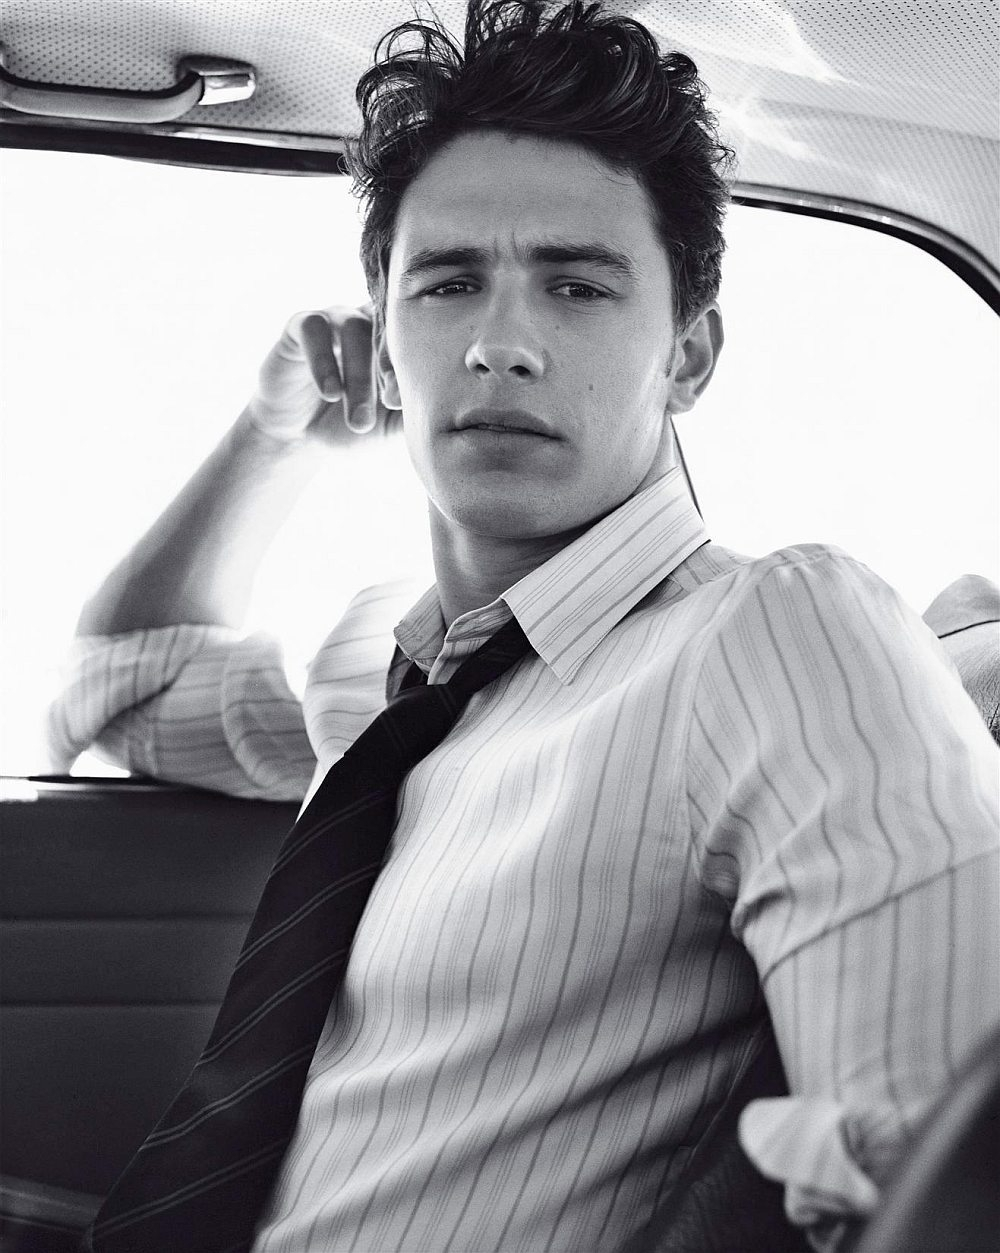 James Franco younger photo one at pinterest.com